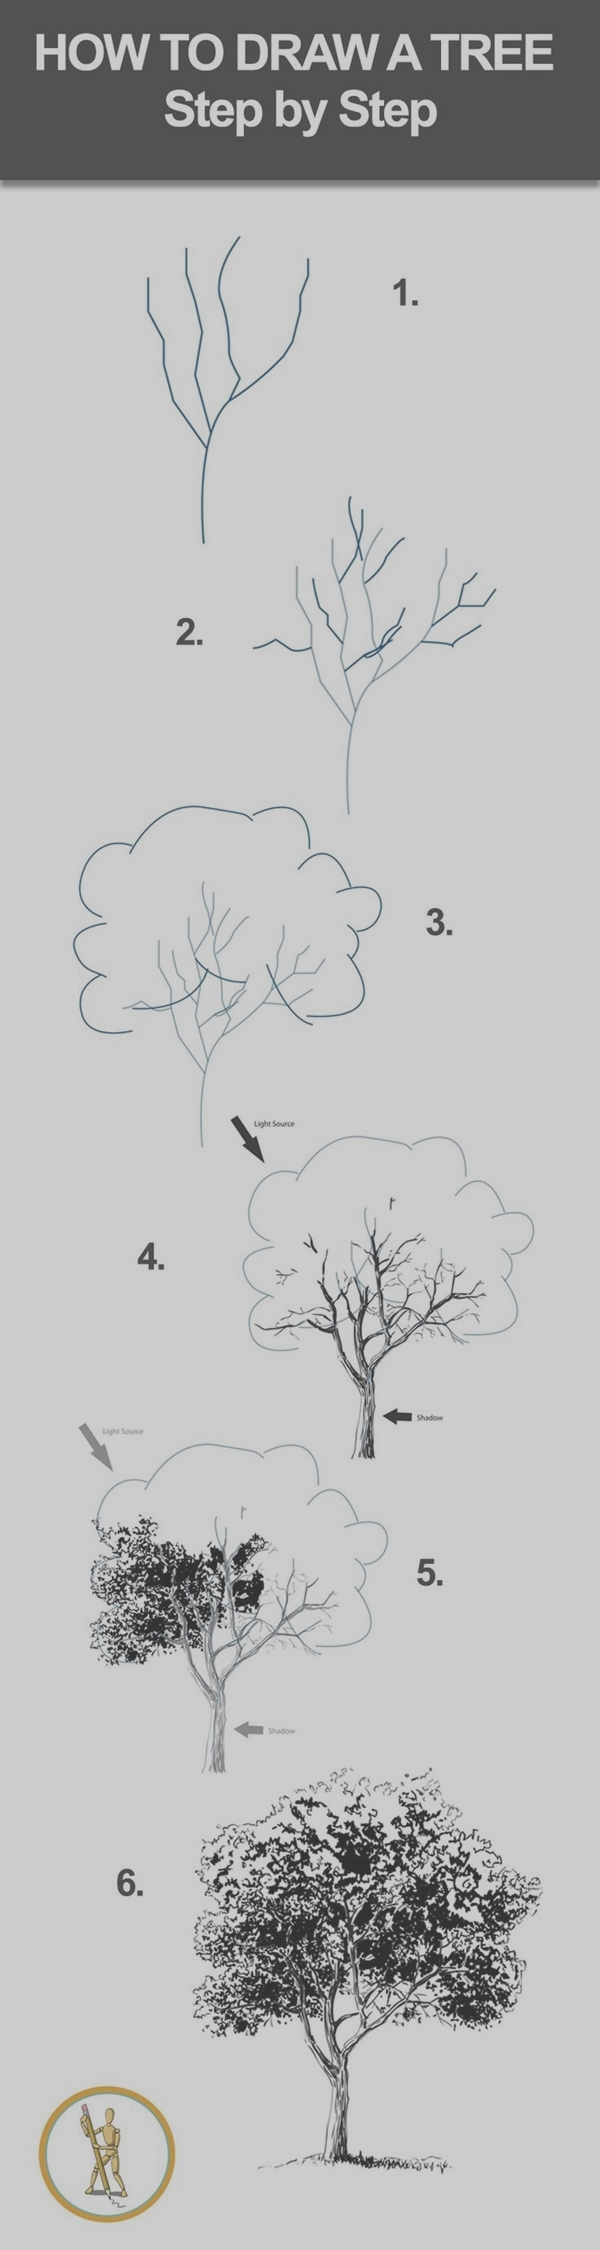 Easy Step by Step Art Drawings to Practice (32)